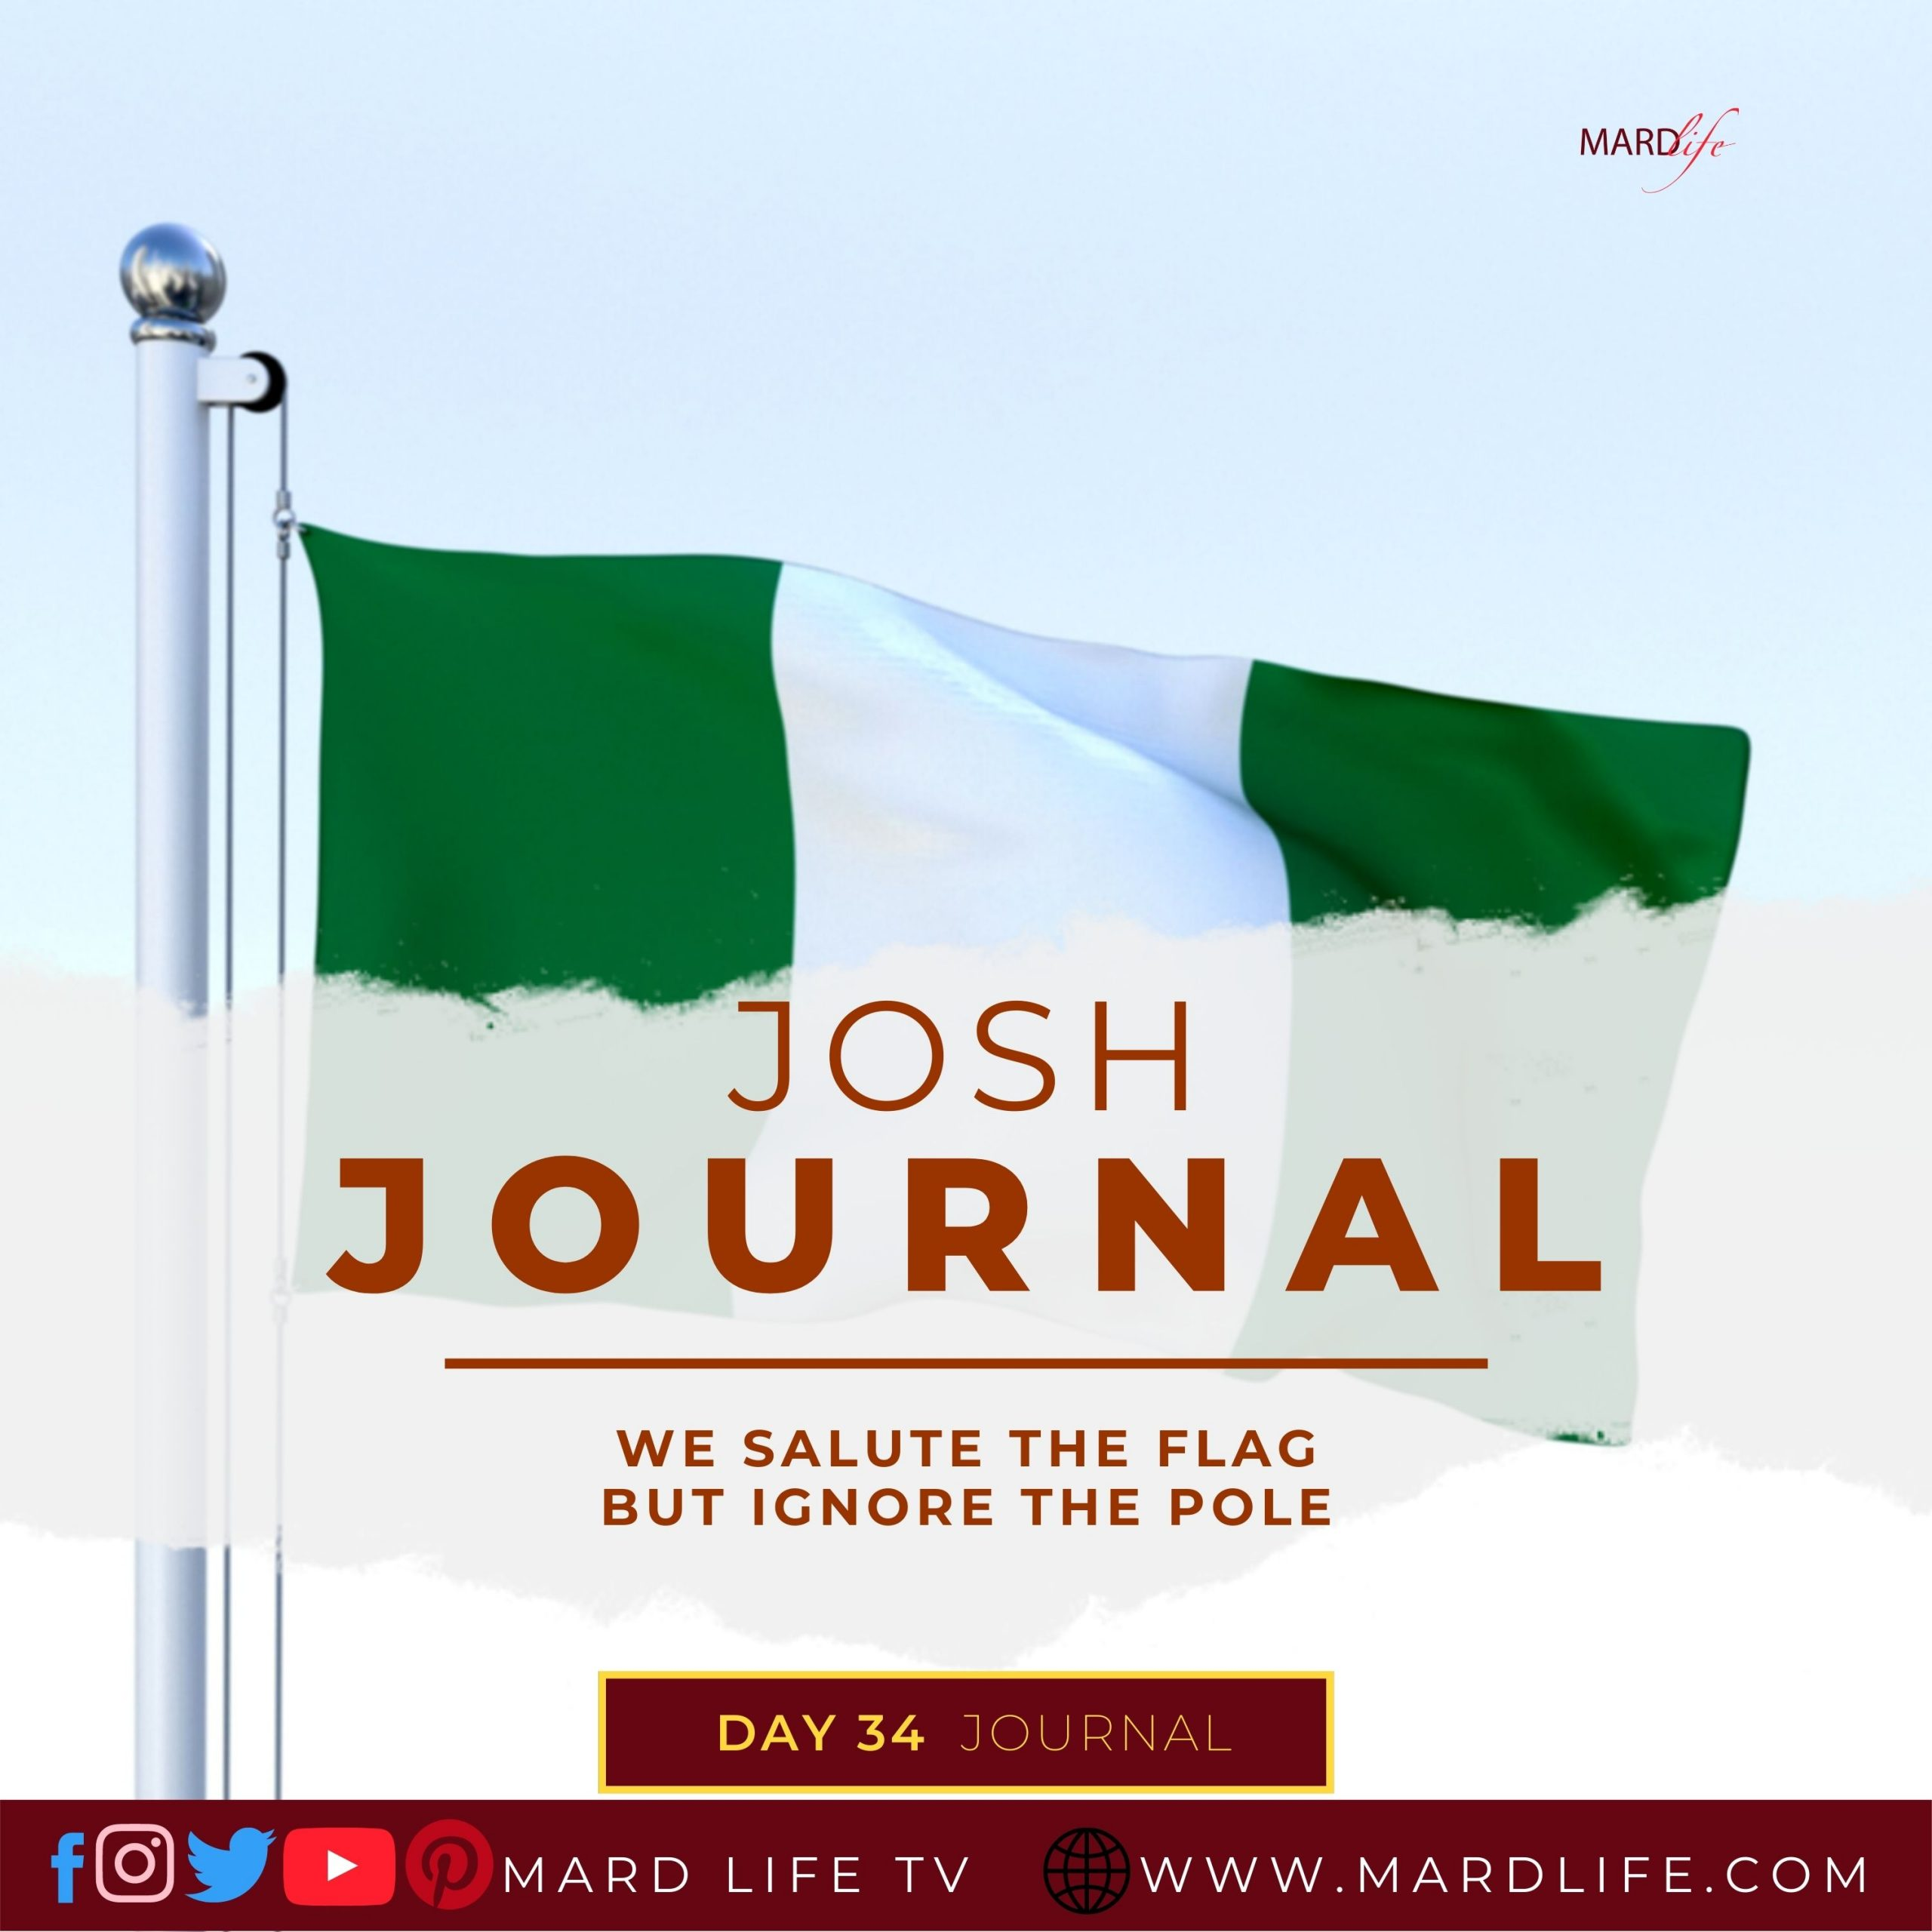 Salute The Flag, Nigerian Flag, Flag, Flagpole, Salute, Respect, Fresh Off The Boat, Jessica Huang, Maverick, Genius, Safety,